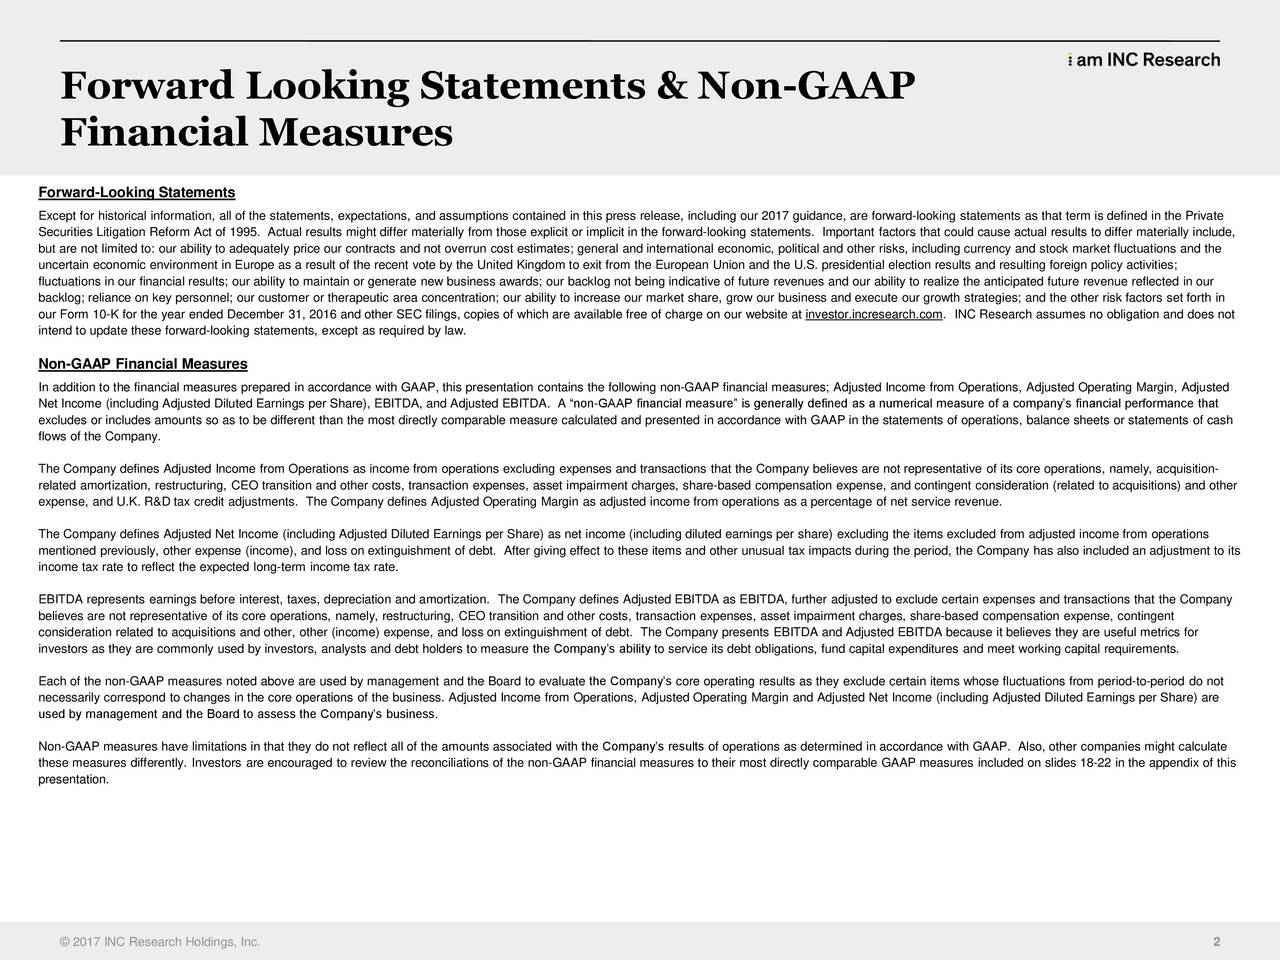 Financial Measures Forward-Looking Statements Except for historical information, all of the statements, expectations, and assumptions contained in this press release, including our 2017 guidance, are forward-looking statements as that term is defined in the Private Securities Litigation Reform Act of 1995. Actual results might differ materially from those explicit or implicit in the forward-looking statements. Important factors that could cause actual results to differ materially include, but are not limited to: our ability to adequately price our contracts and not overrun cost estimates; general and international economic, political and other risks, including currency and stock market fluctuations and the uncertain economic environment in Europe as a result of the recent vote by the United Kingdom to exit from the European Union and the U.S. presidential election results and resulting foreign policy activities; fluctuations in our financial results; our ability to maintain or generate new business awards; our backlog not being indicative of future revenues and our ability to realize the anticipated future revenue reflected in our backlog; reliance on key personnel; our customer or therapeutic area concentration; our ability to increase our market share, grow our business and execute our growth strategies; and the other risk factors set forth in our Form 10-K for the year ended December 31, 2016 and other SEC filings, copies of which are available free of charge on our website at investor.incresearch.com. INC Research assumes no obligation and does not intend to update these forward-looking statements, except as required by law. Non-GAAP Financial Measures In addition to the financial measures prepared in accordance with GAAP, this presentation contains the following non-GAAP financial measures; Adjusted Income from Operations, Adjusted Operating Margin, Adjusted Net Income (including Adjusted Diluted Earnings per Share), EBITDA, and Adjusted EBITDA. A non-GAAP fina